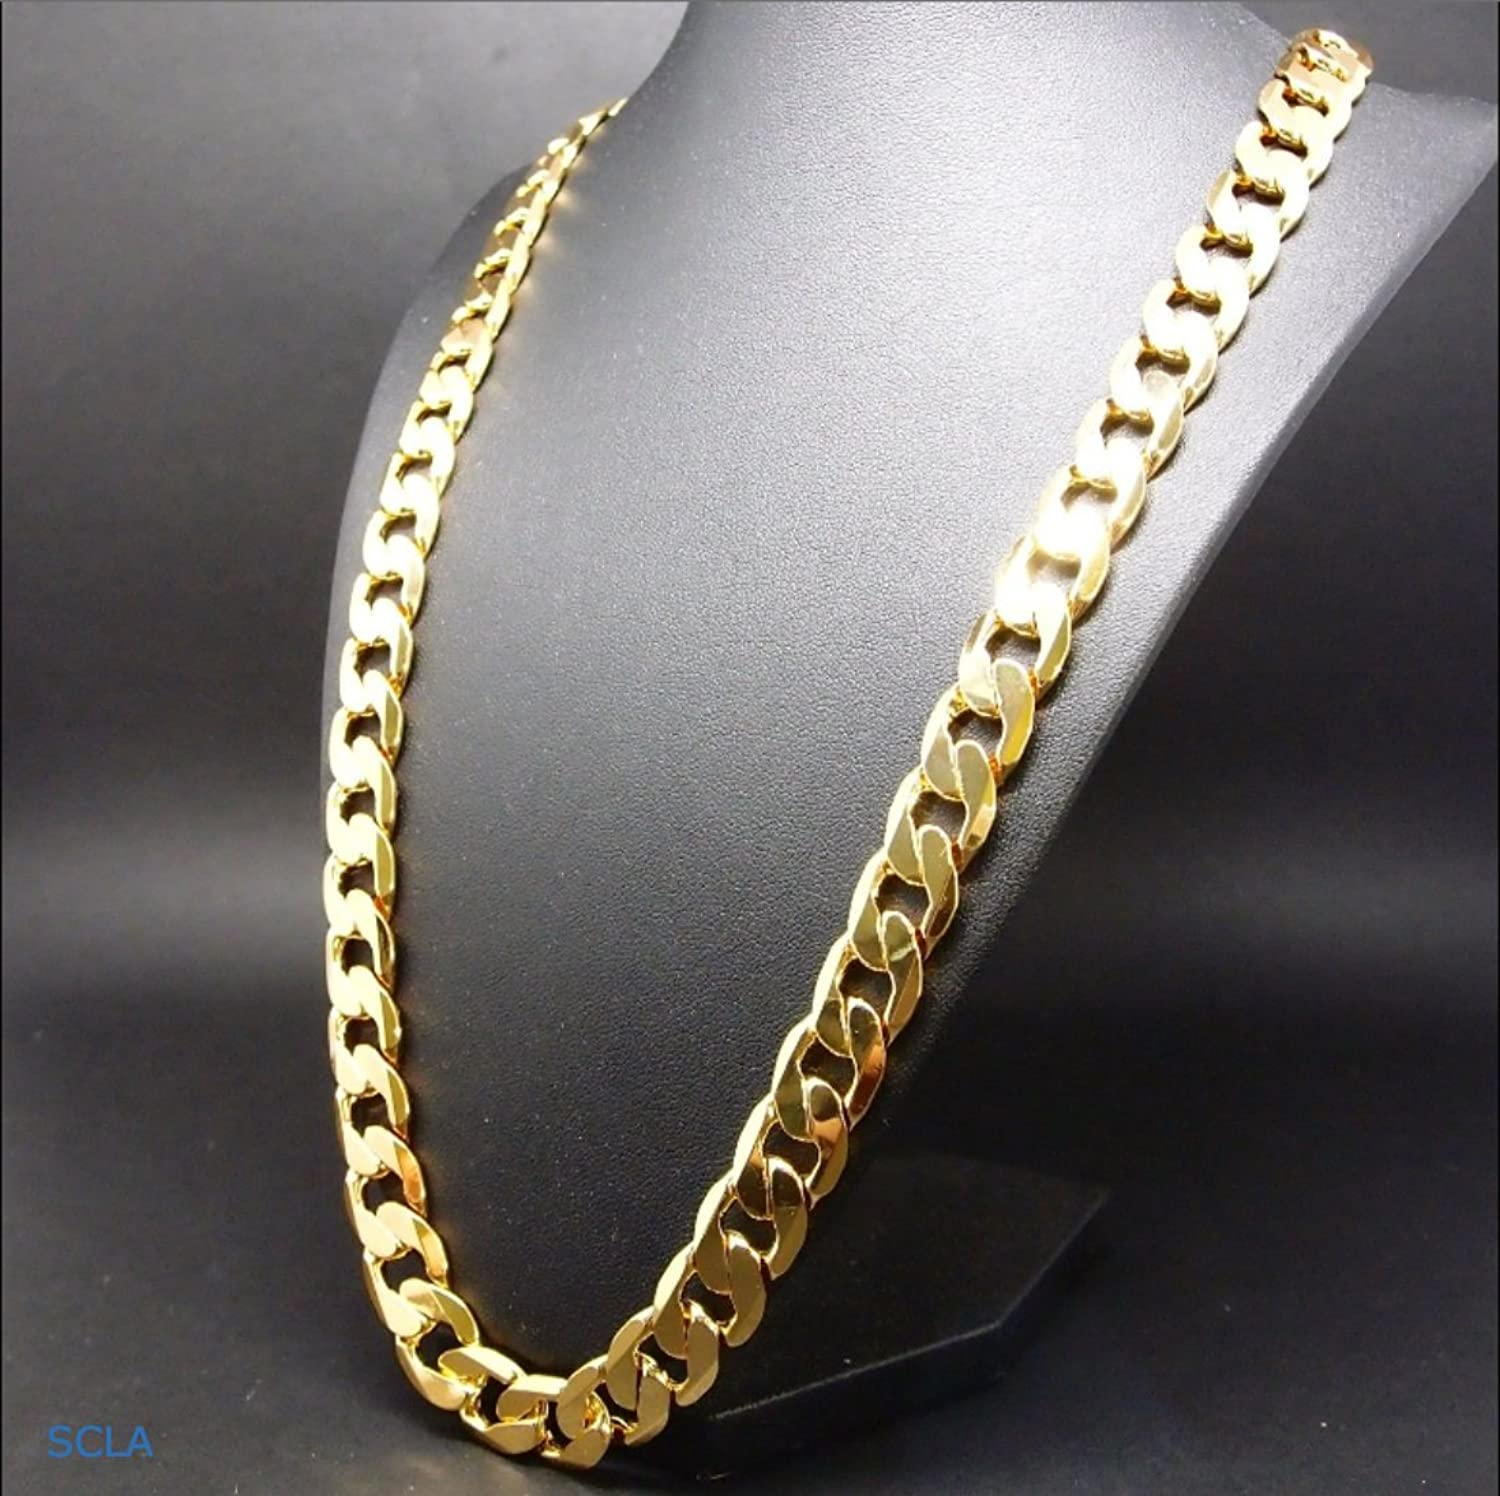 Gold chain necklace 11MM 24K Diamond cut Smooth Cuban Link with a ...